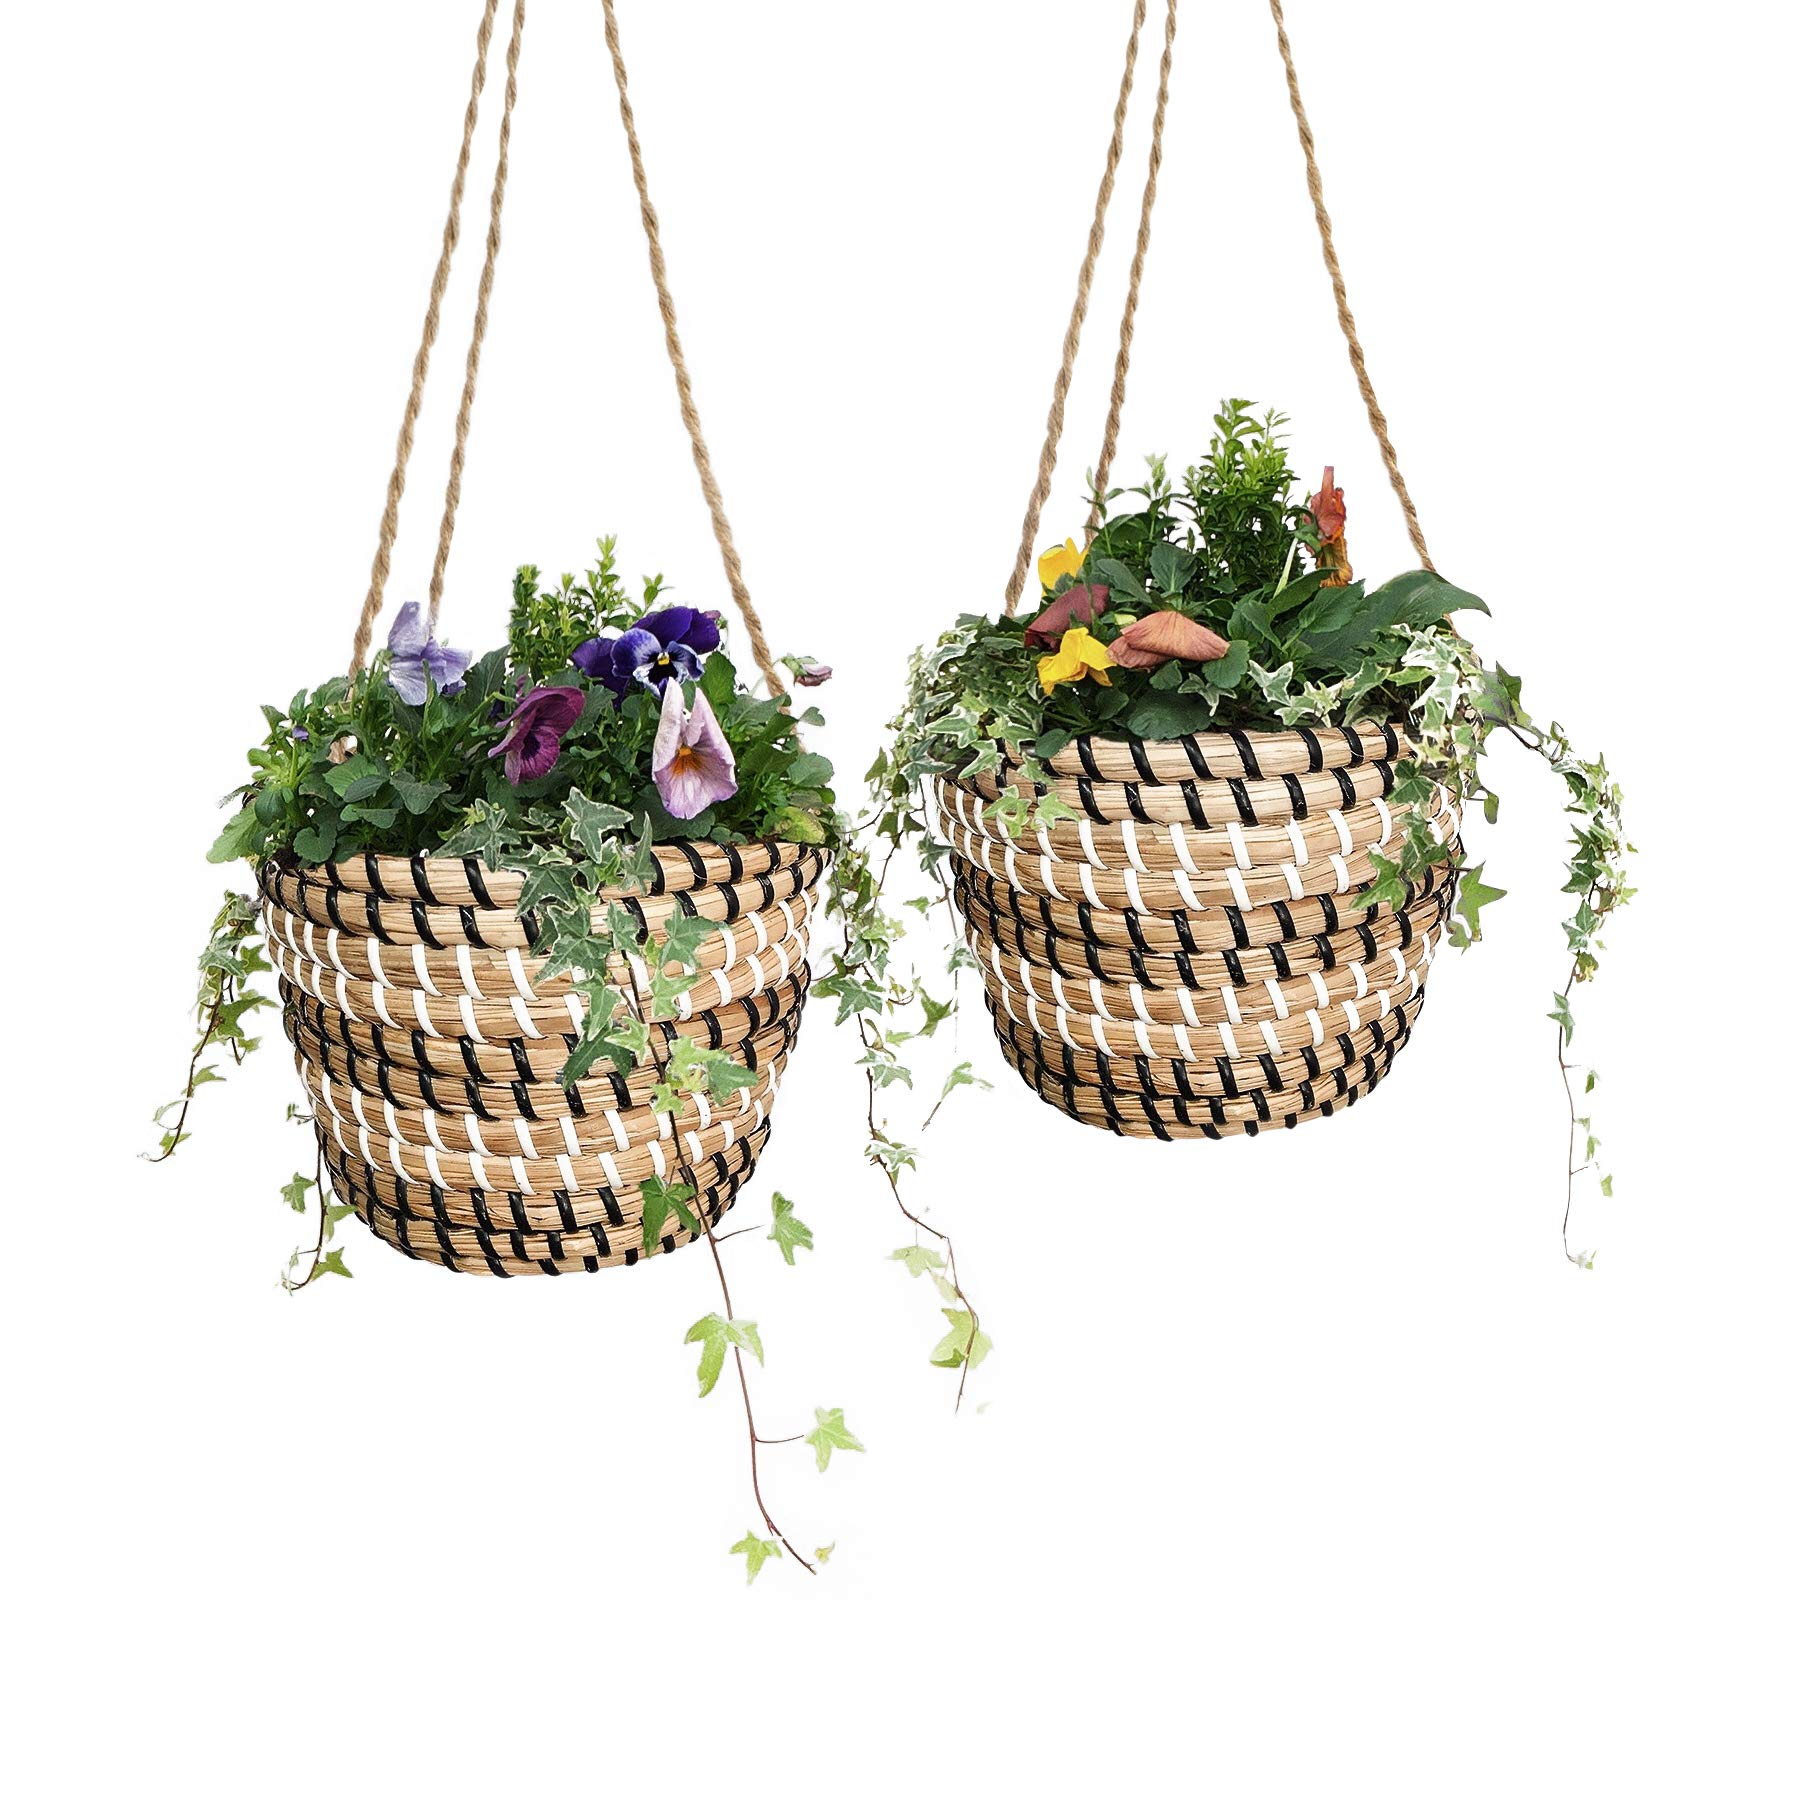 Fauxliage Natural Hanging Planters 2pcs. Indoor Handmade Plant Pot Set for Rustic, Boho Decor. Seagrass Flower Pot for Cacti or Succulents 7''